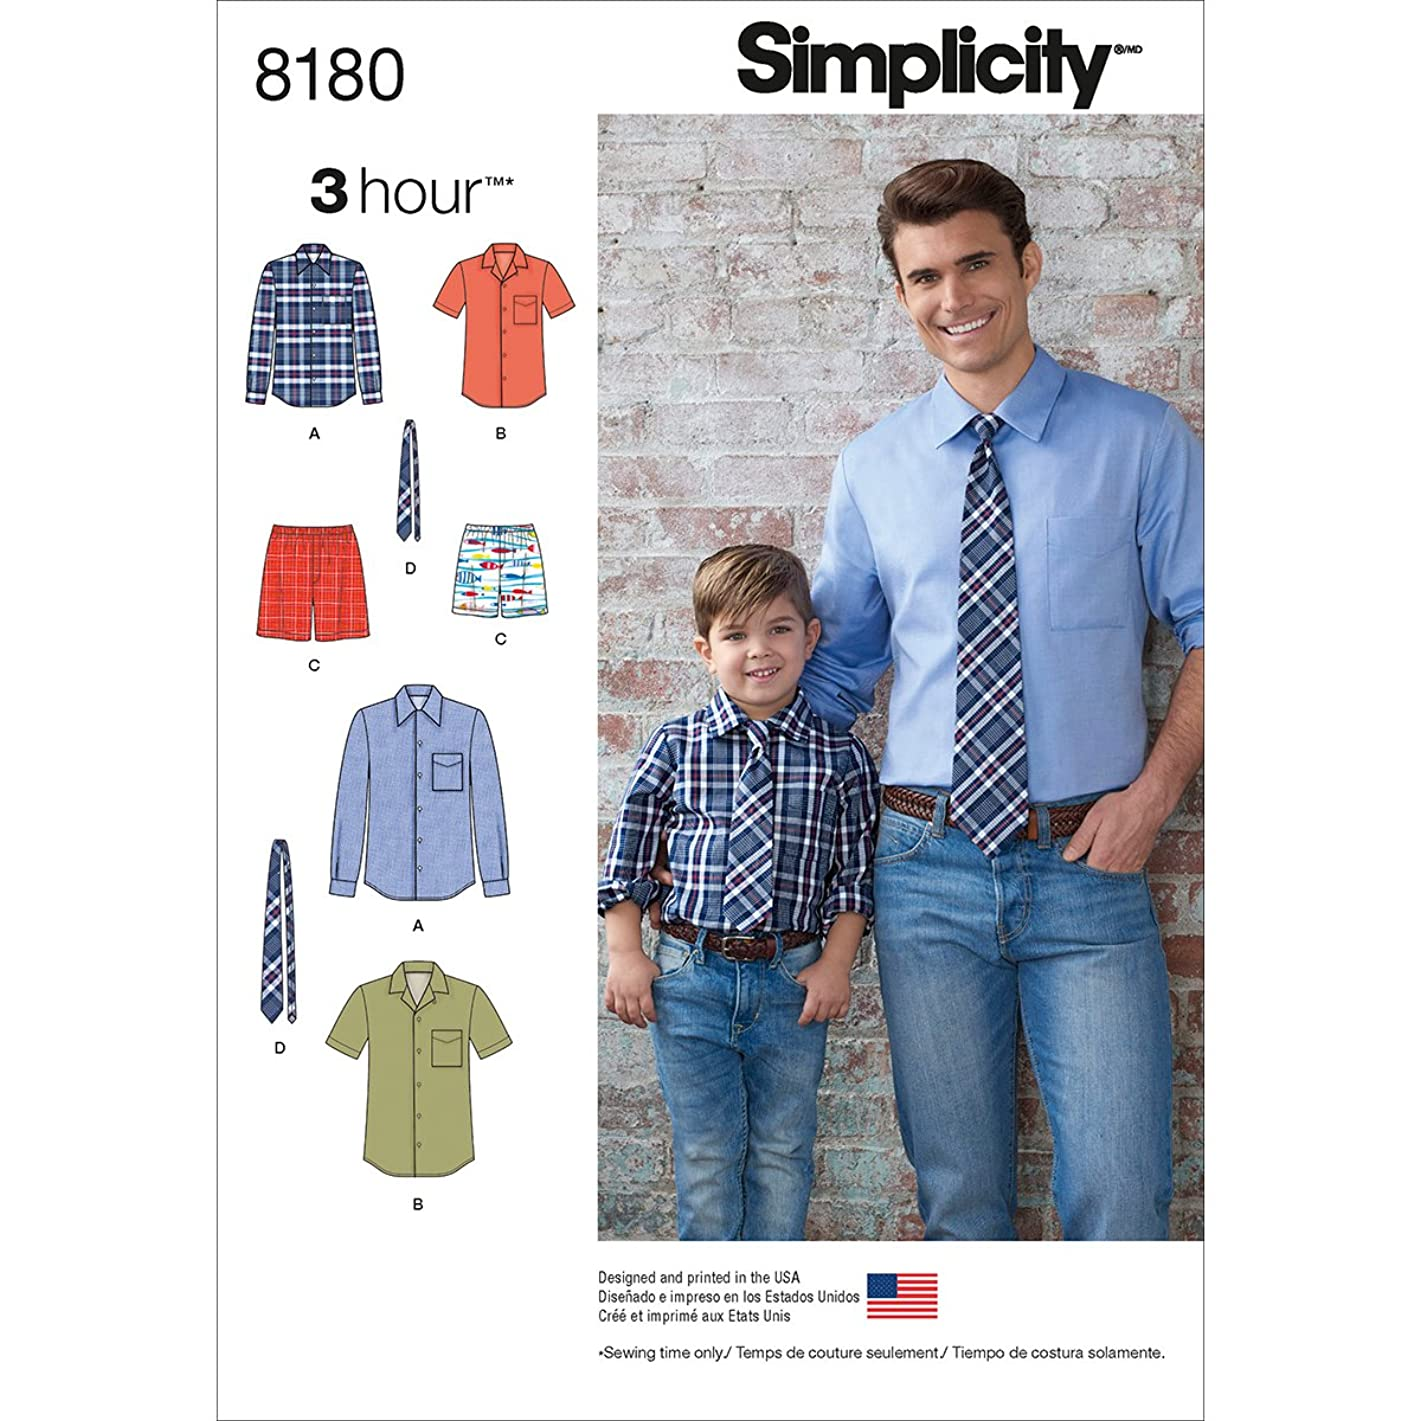 Simplicity 8180 Men and Boy's Shirt, Boxer Short, and Tie Sewing Pattern by 3 Hour in Sizes A (S-L / S-XL)